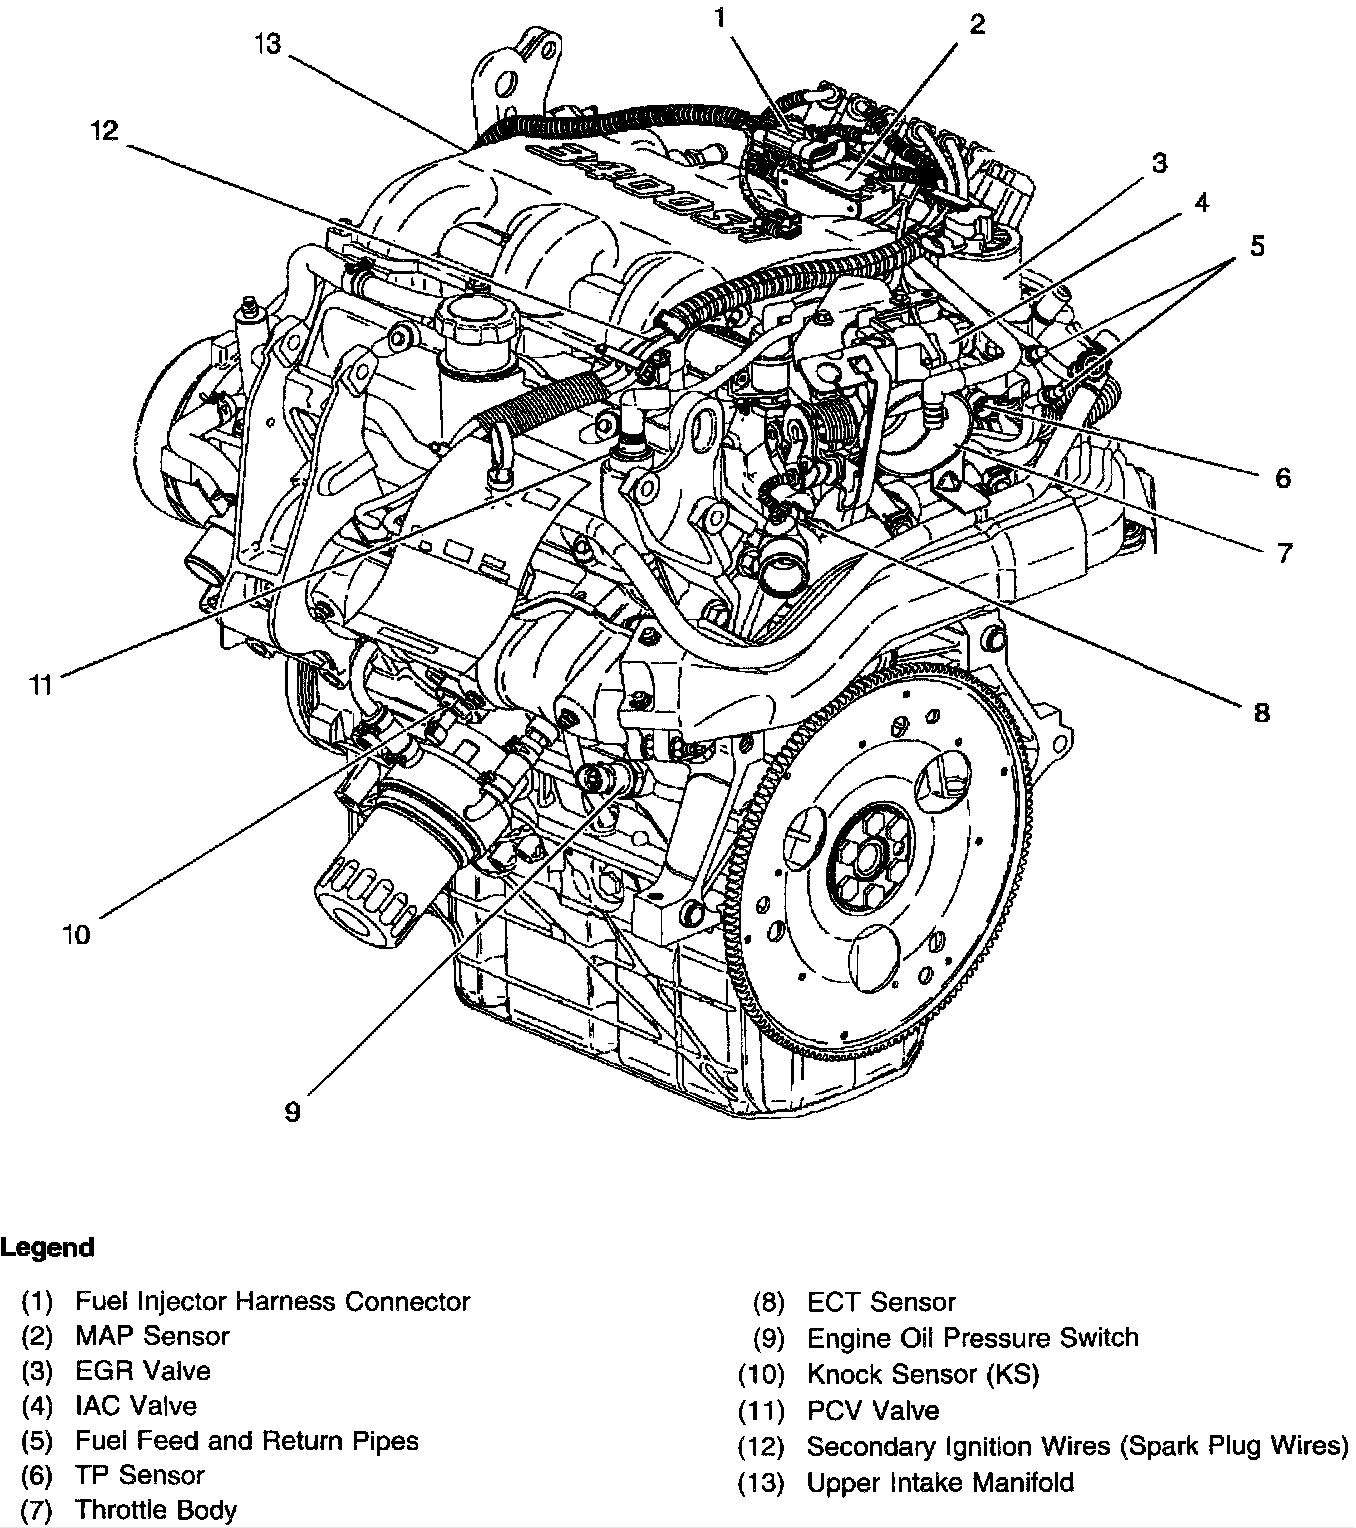 hight resolution of 1999 toyota camry engine diagram toyota v6 engine sensor diagram death by pp really does kill learning